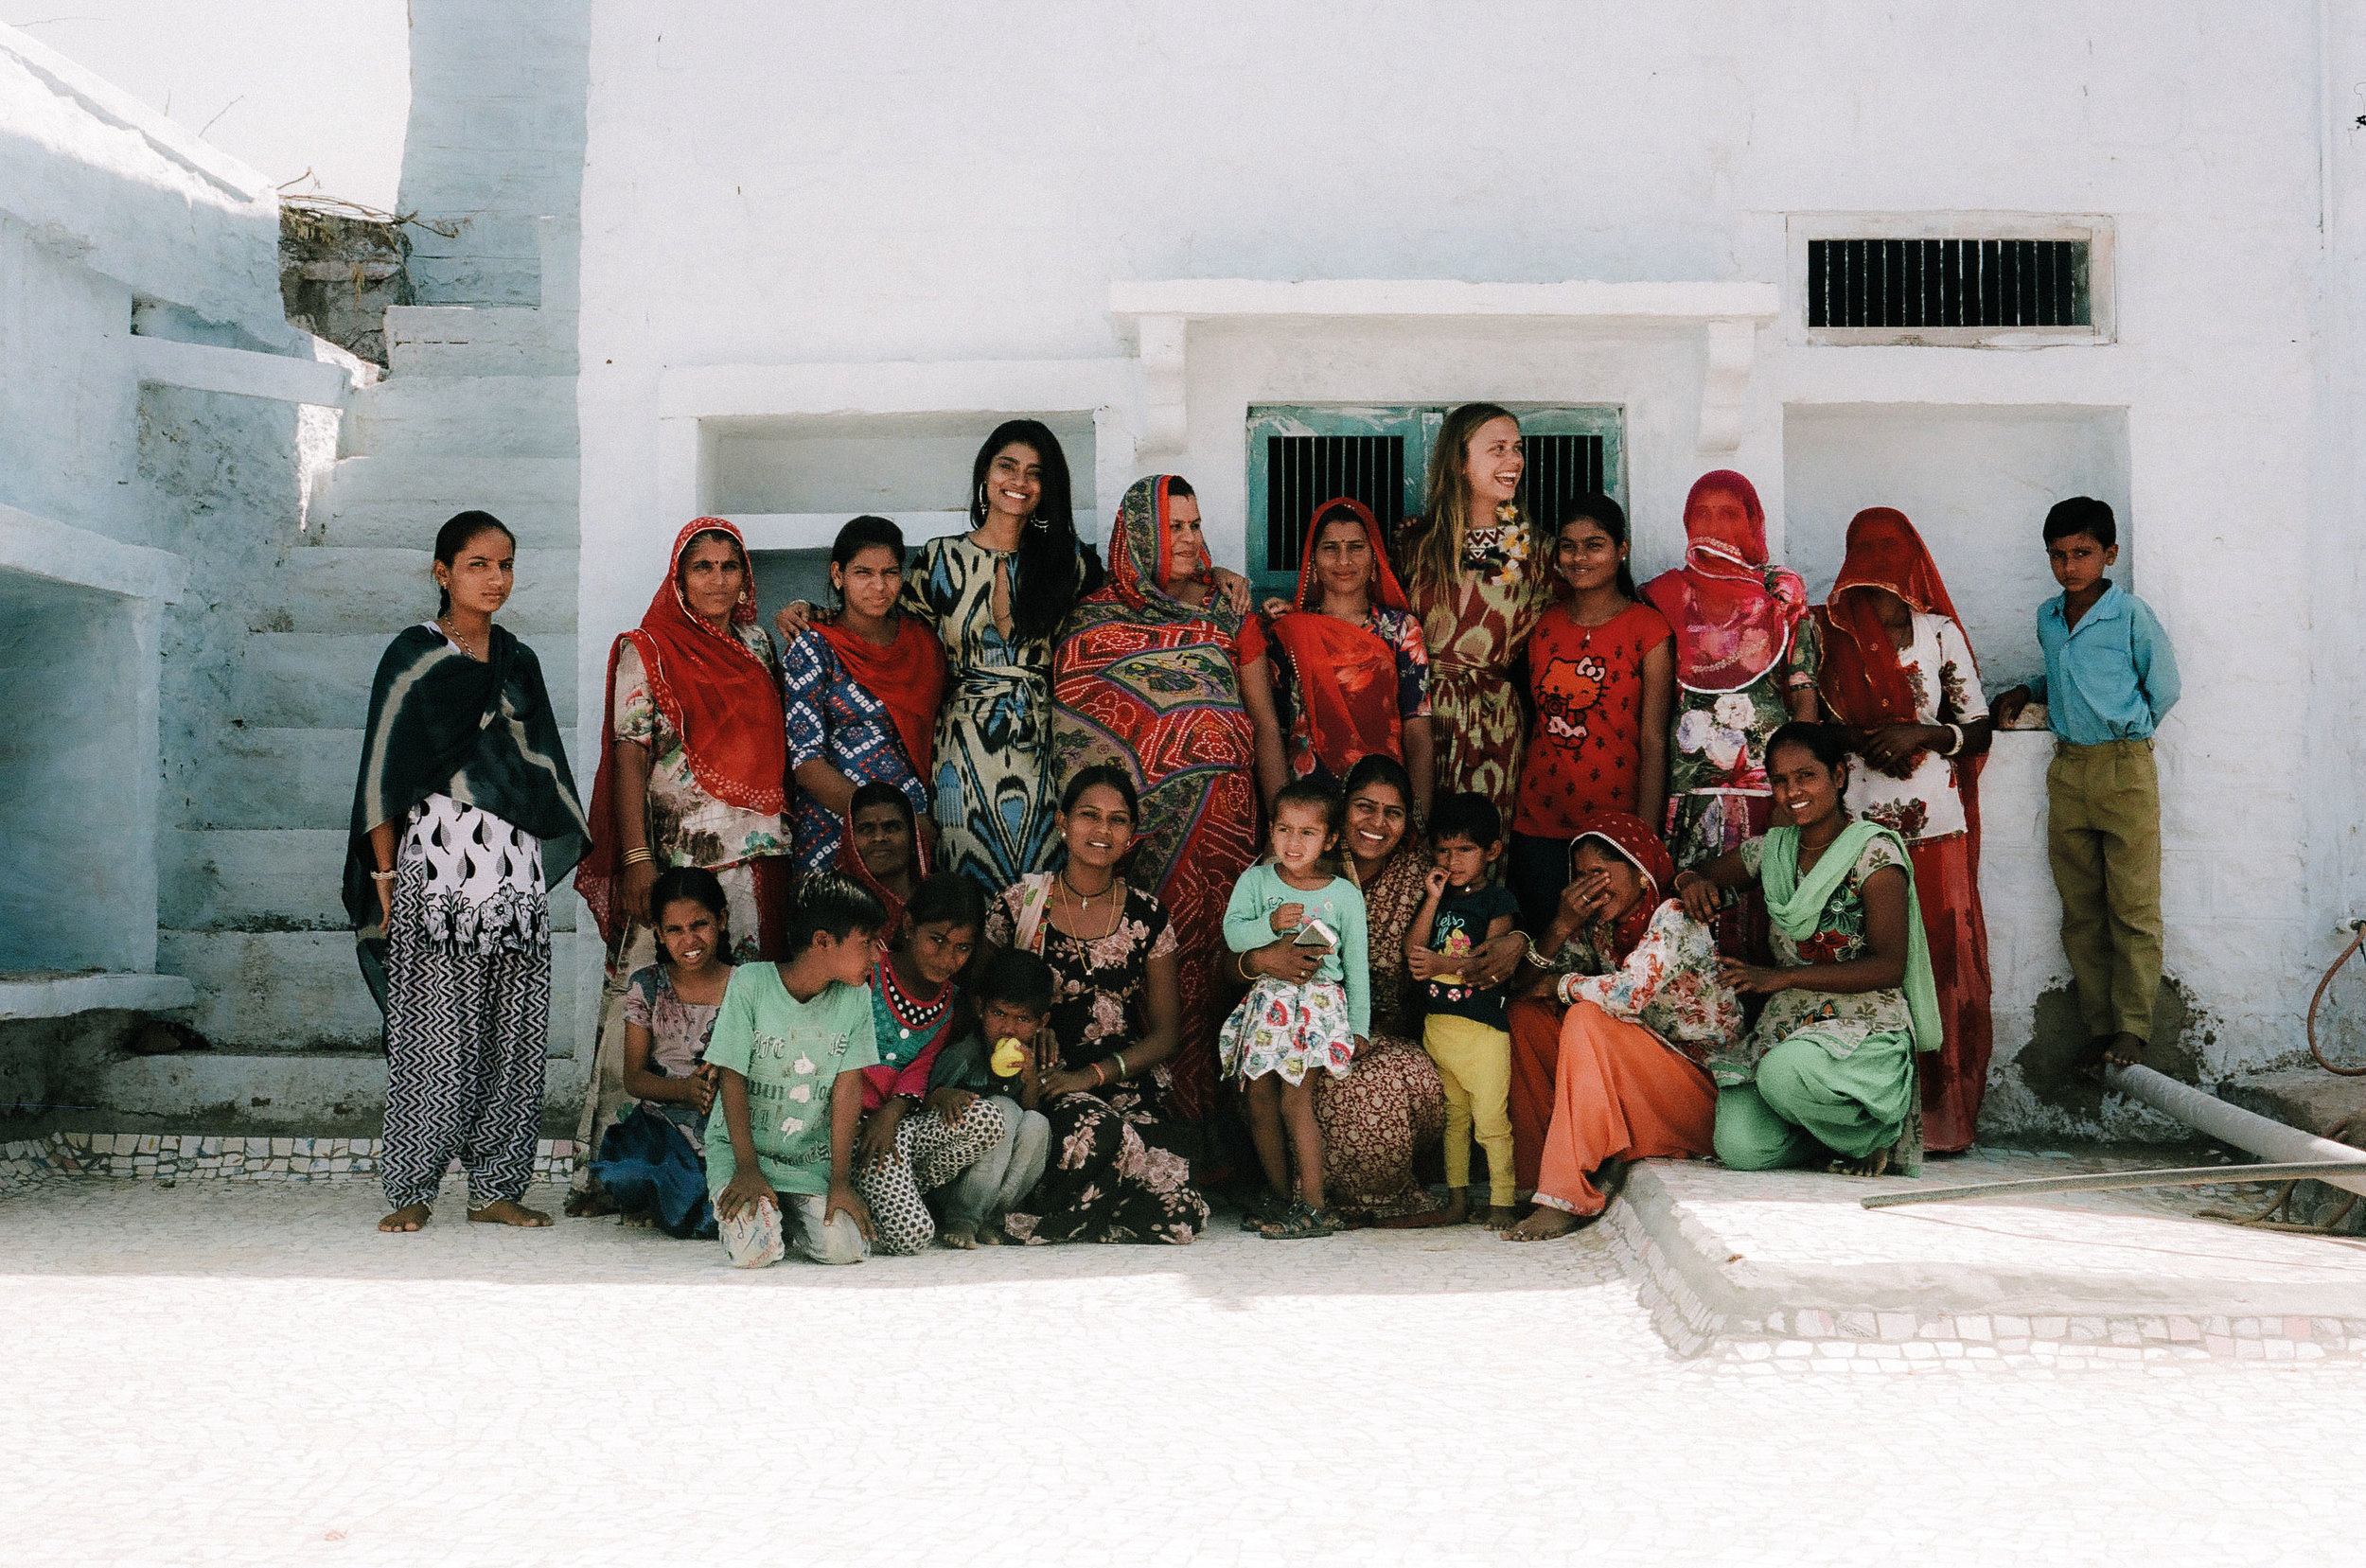 Meet the Saheli Women - The seamstresses making the original Madhu dresses and more for ZAZI